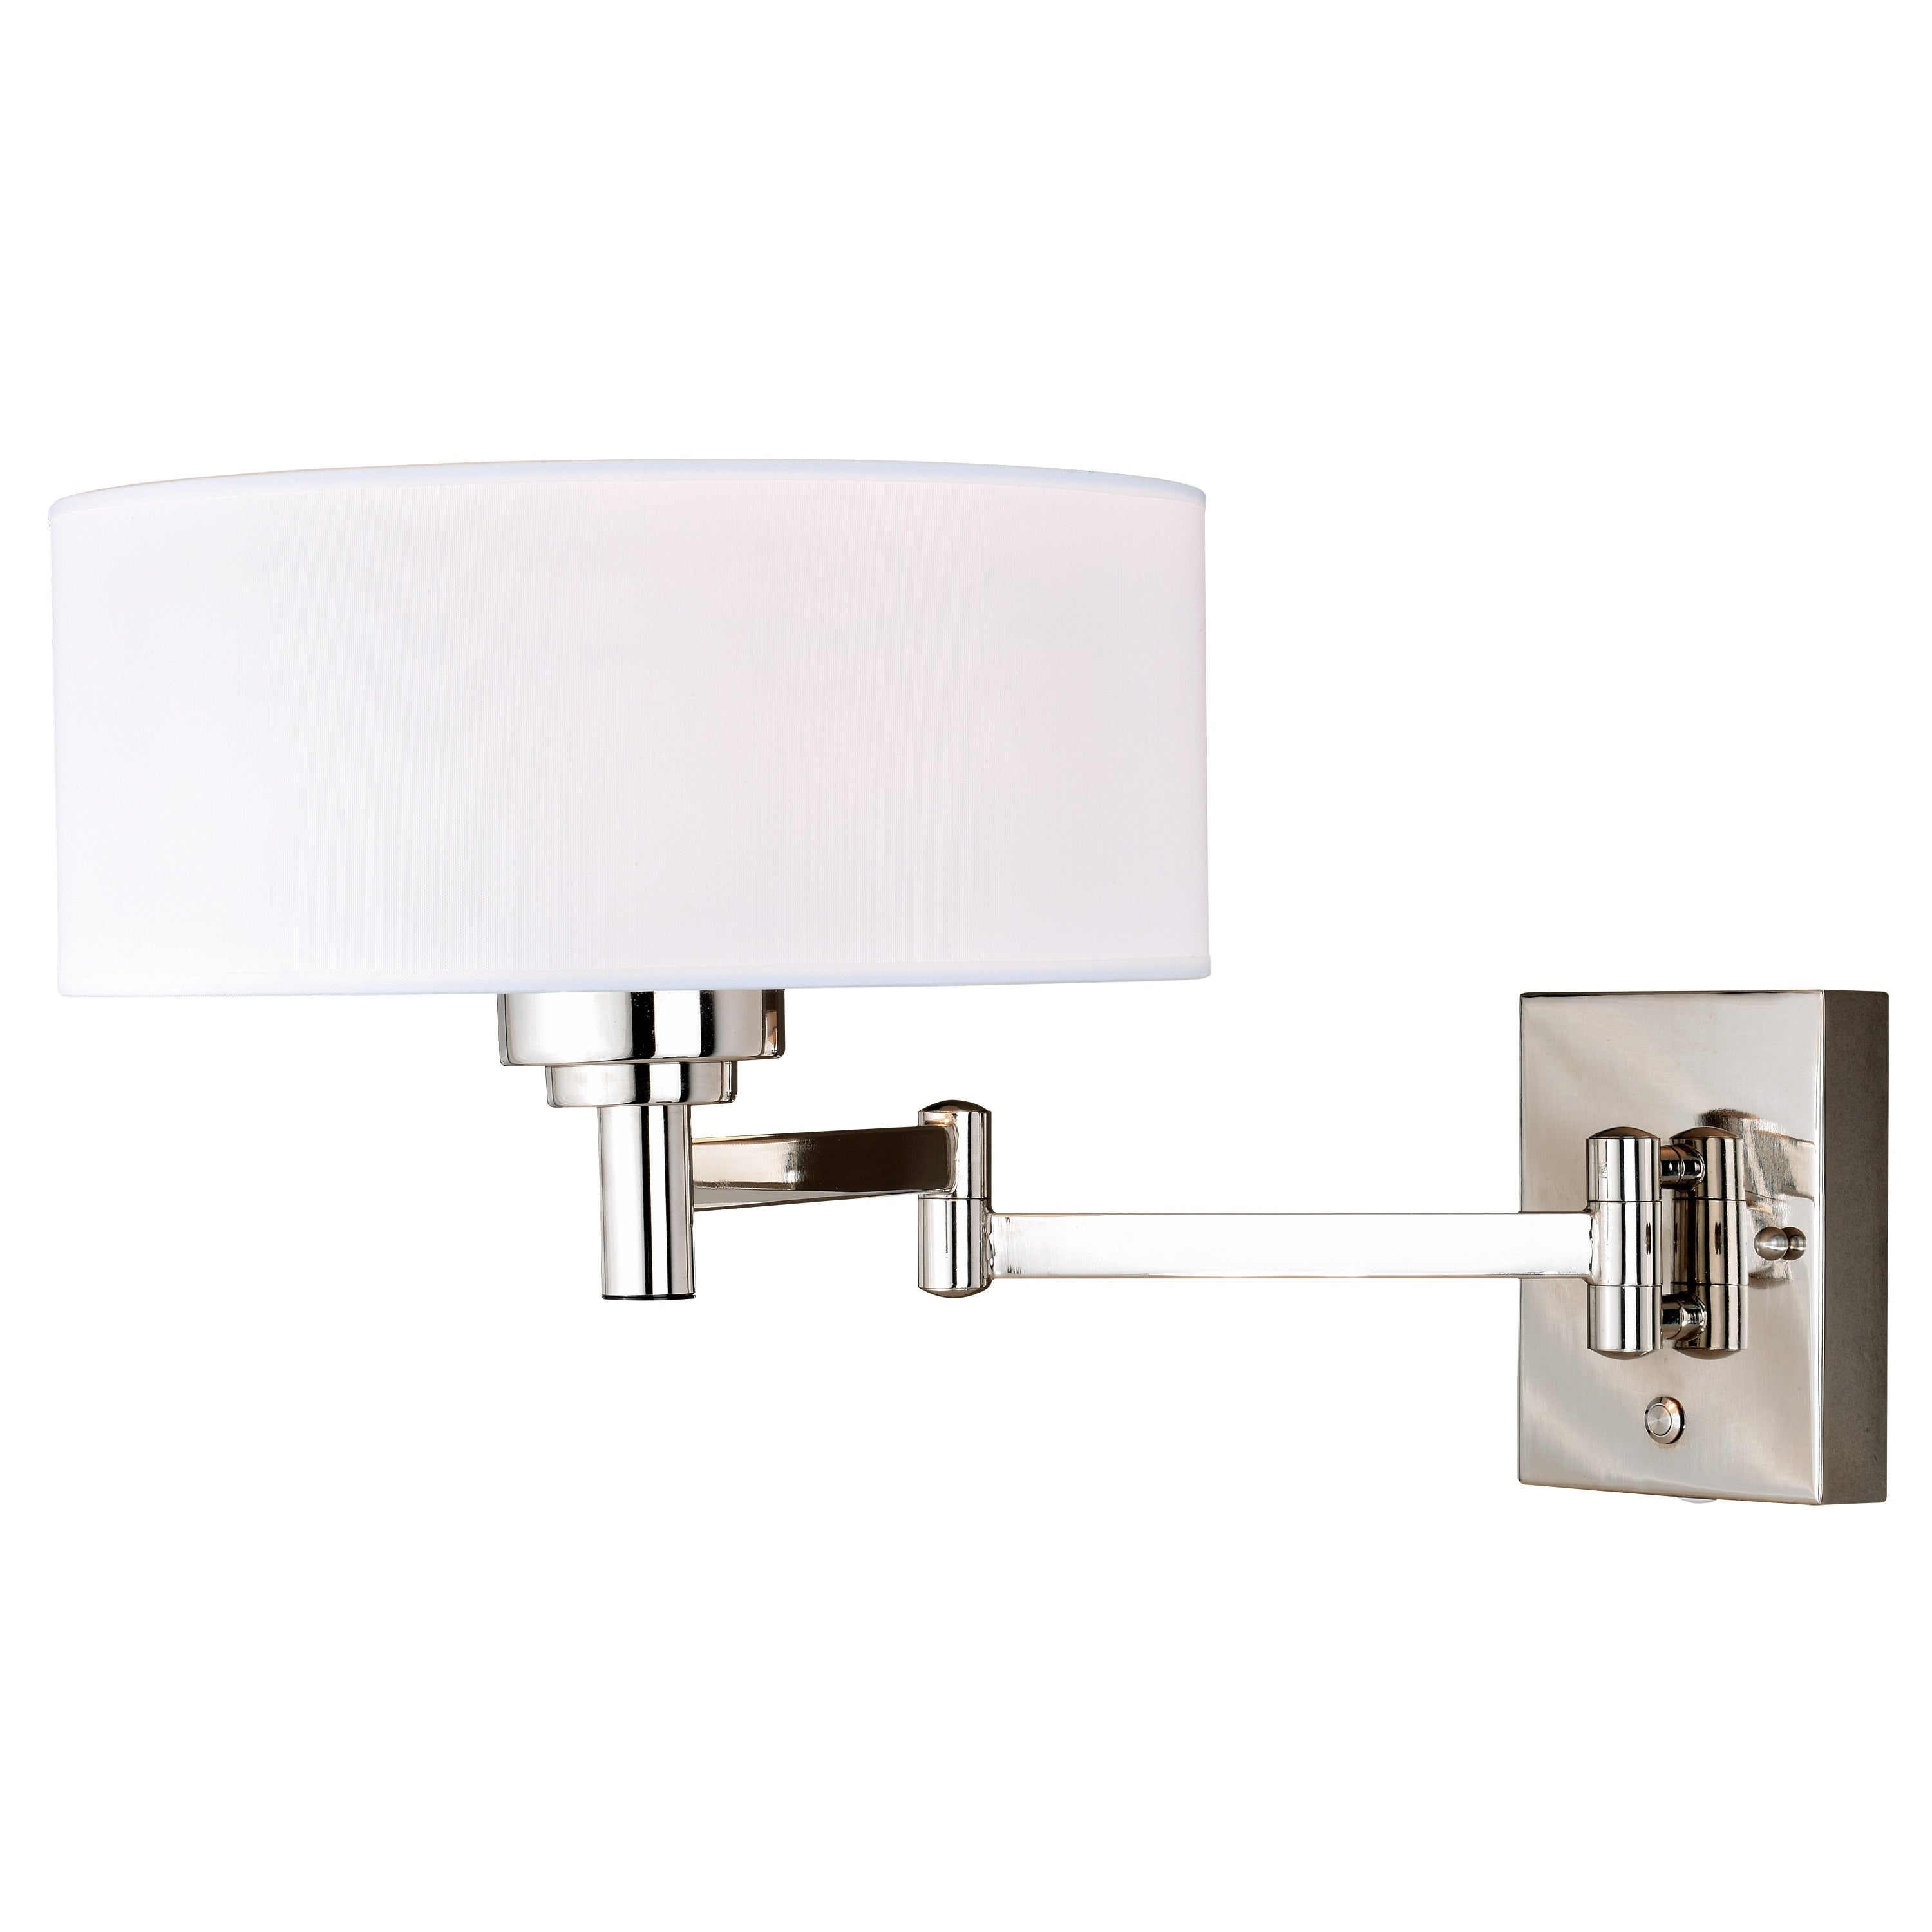 Shop Chapeau Plug In Polished Nickel Drum Motion Sensor Swing Arm Wall Lamp White Silk Shade 12 In W X 11 25 In H X 22 75 In D Overstock 20877327